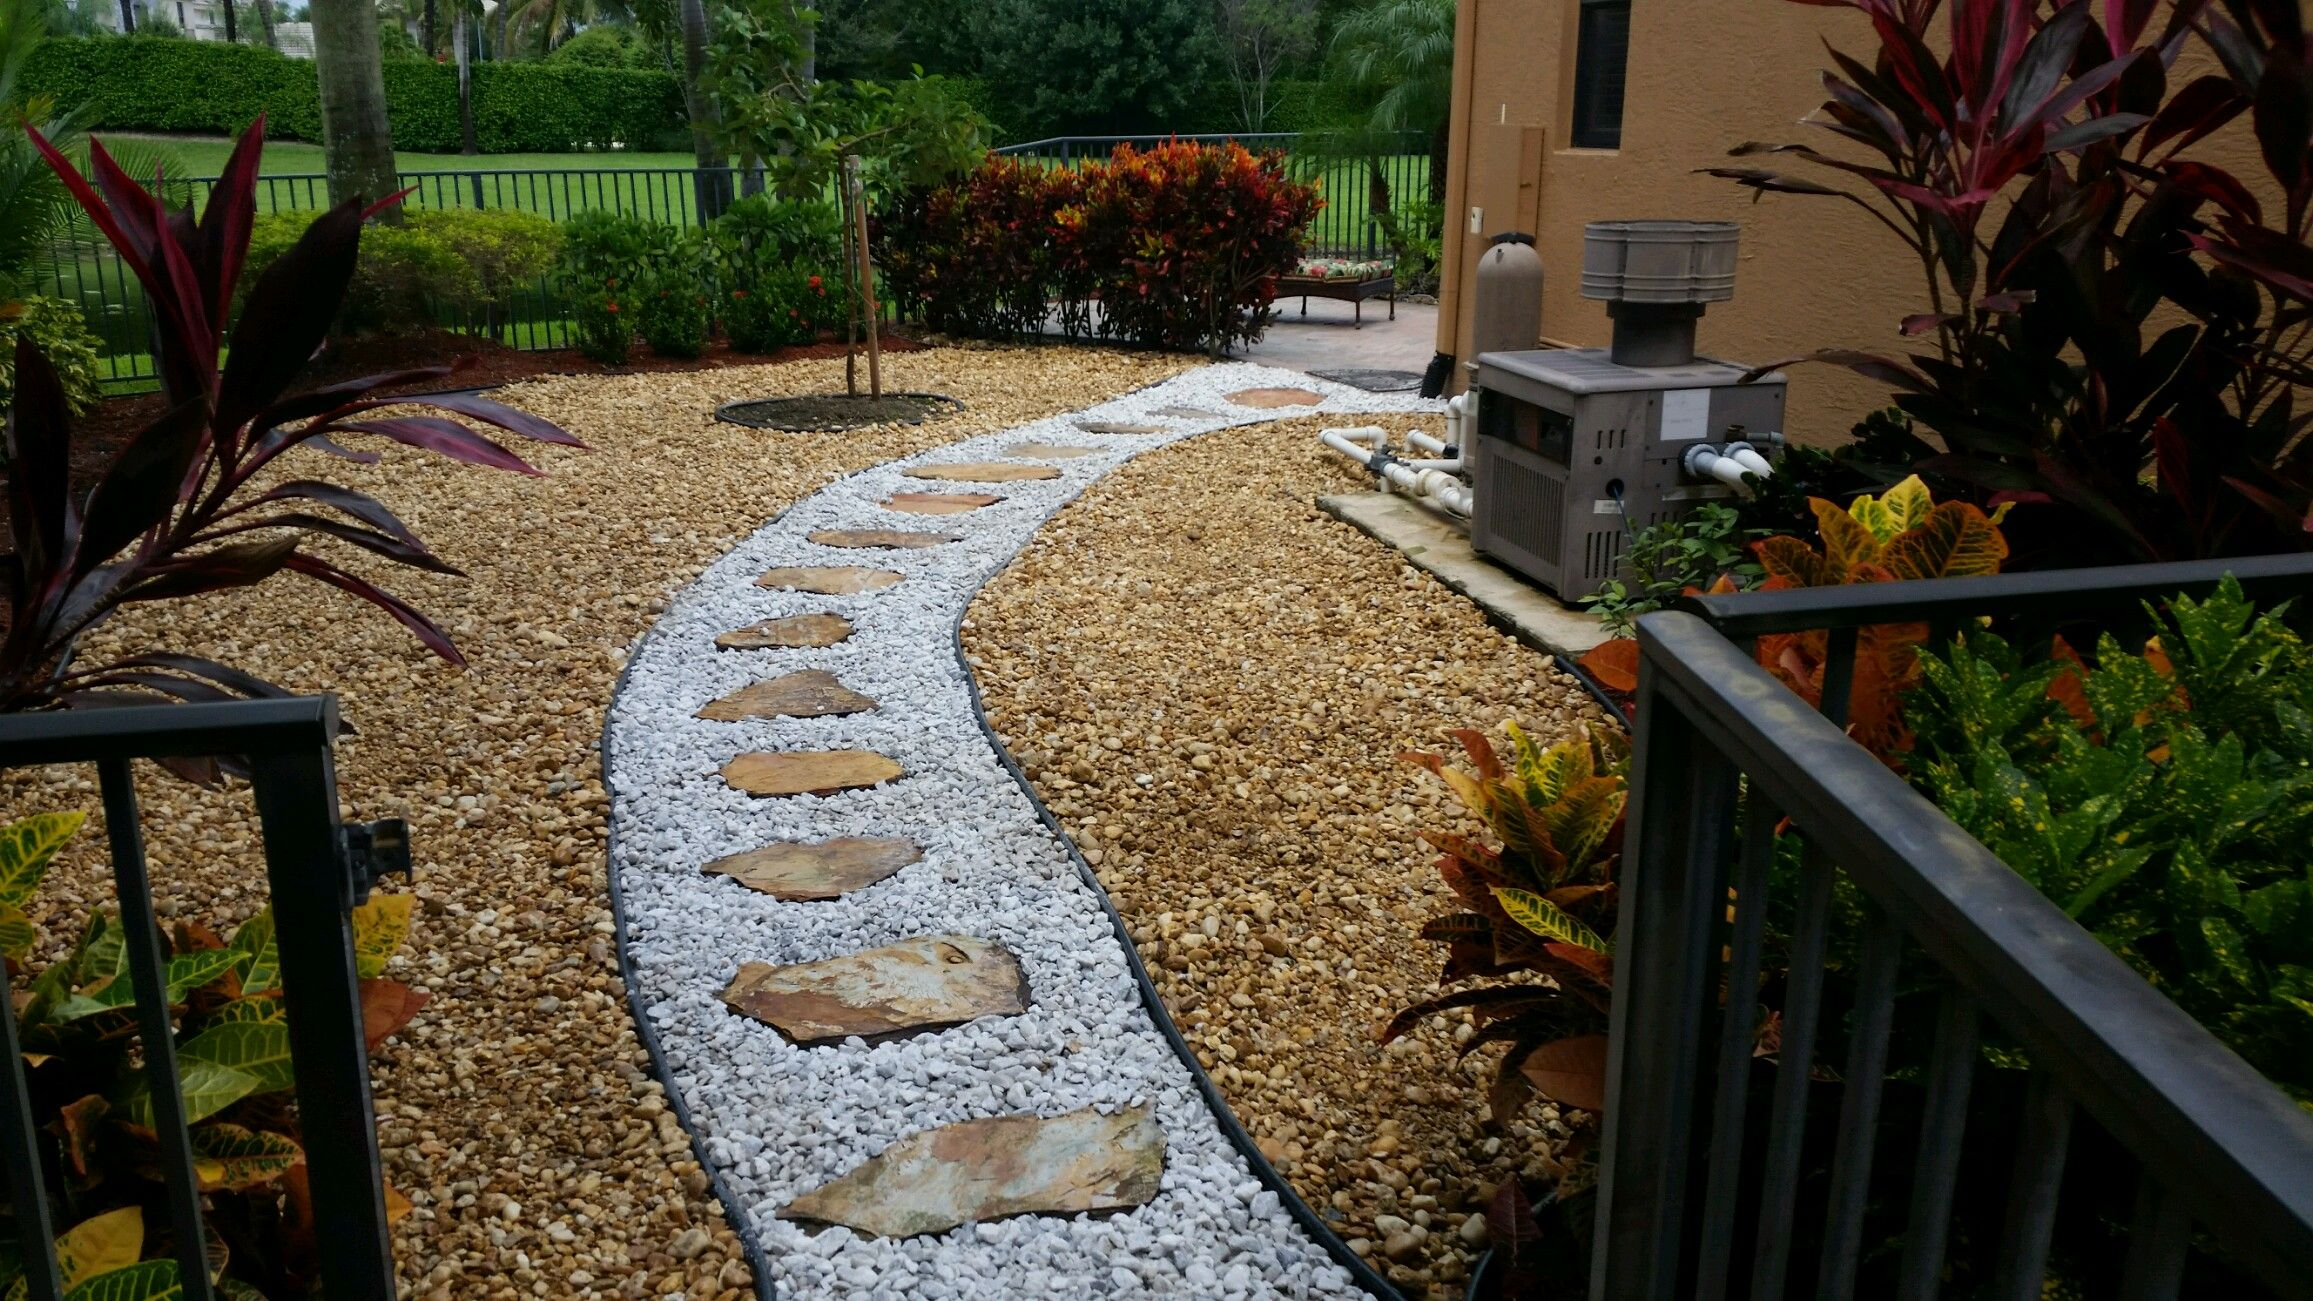 Rock Work Brown River Rock With Inset Pathway Of White Marble Chip Stone With Crab O Landscaping With Rocks Flagstone Pathway Front Yard Landscaping Design